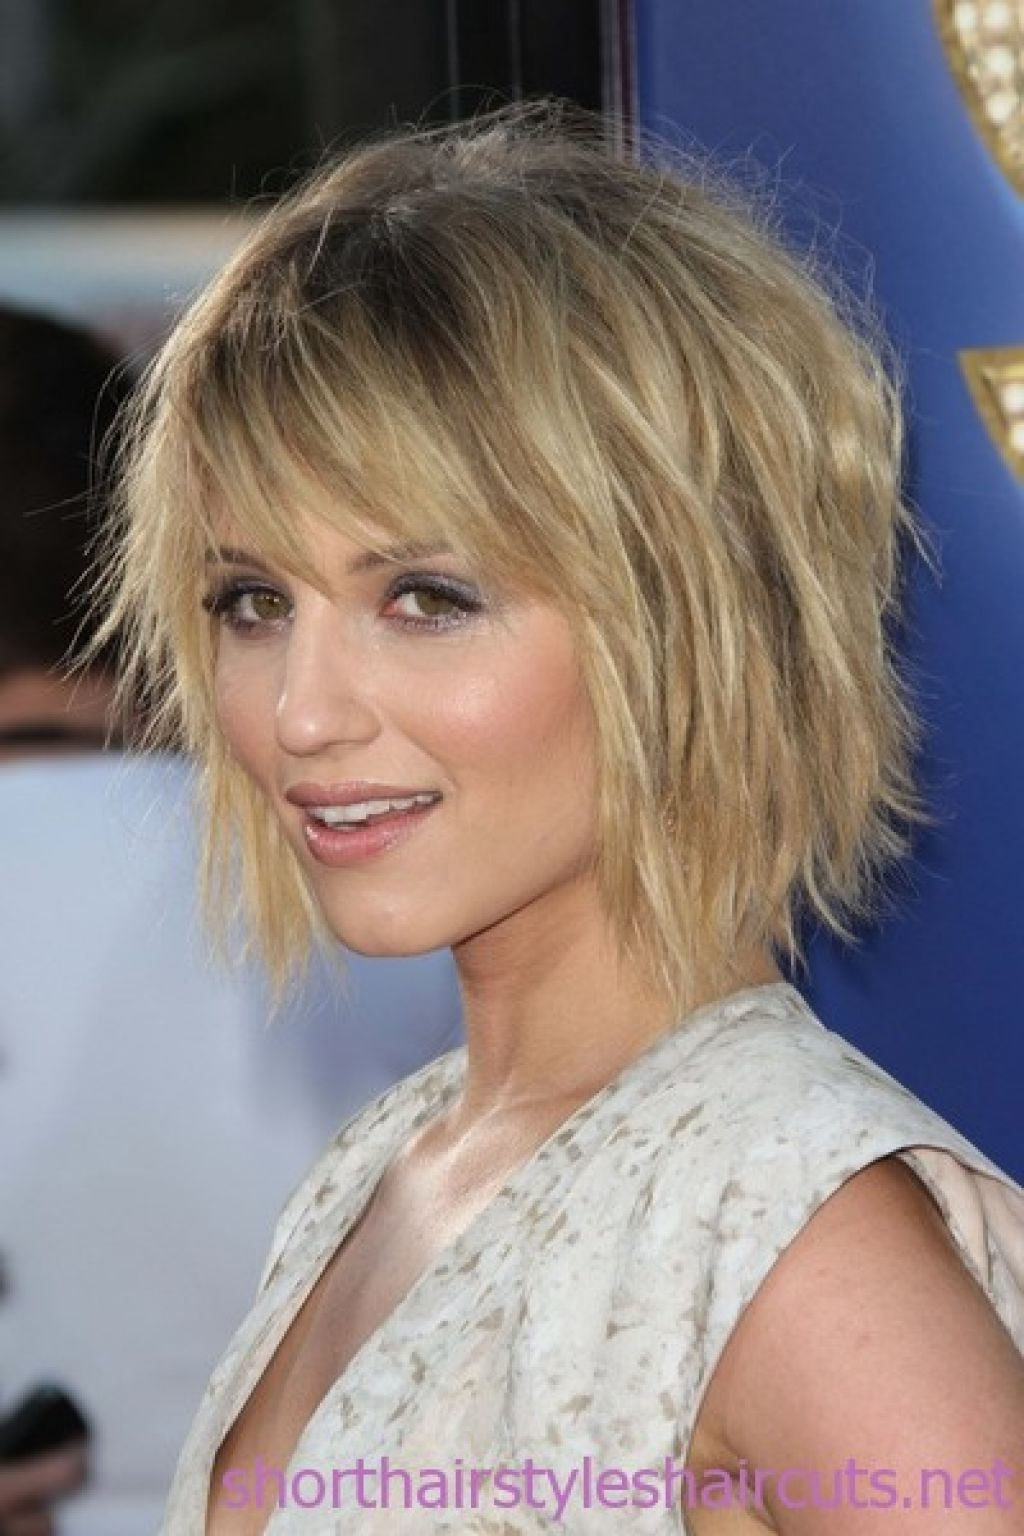 Short Choppy Layered Hairstyles For Fine Hair – 2015 Hairstyles Inside Widely Used Layered Shaggy Bob Hairstyles (View 11 of 15)